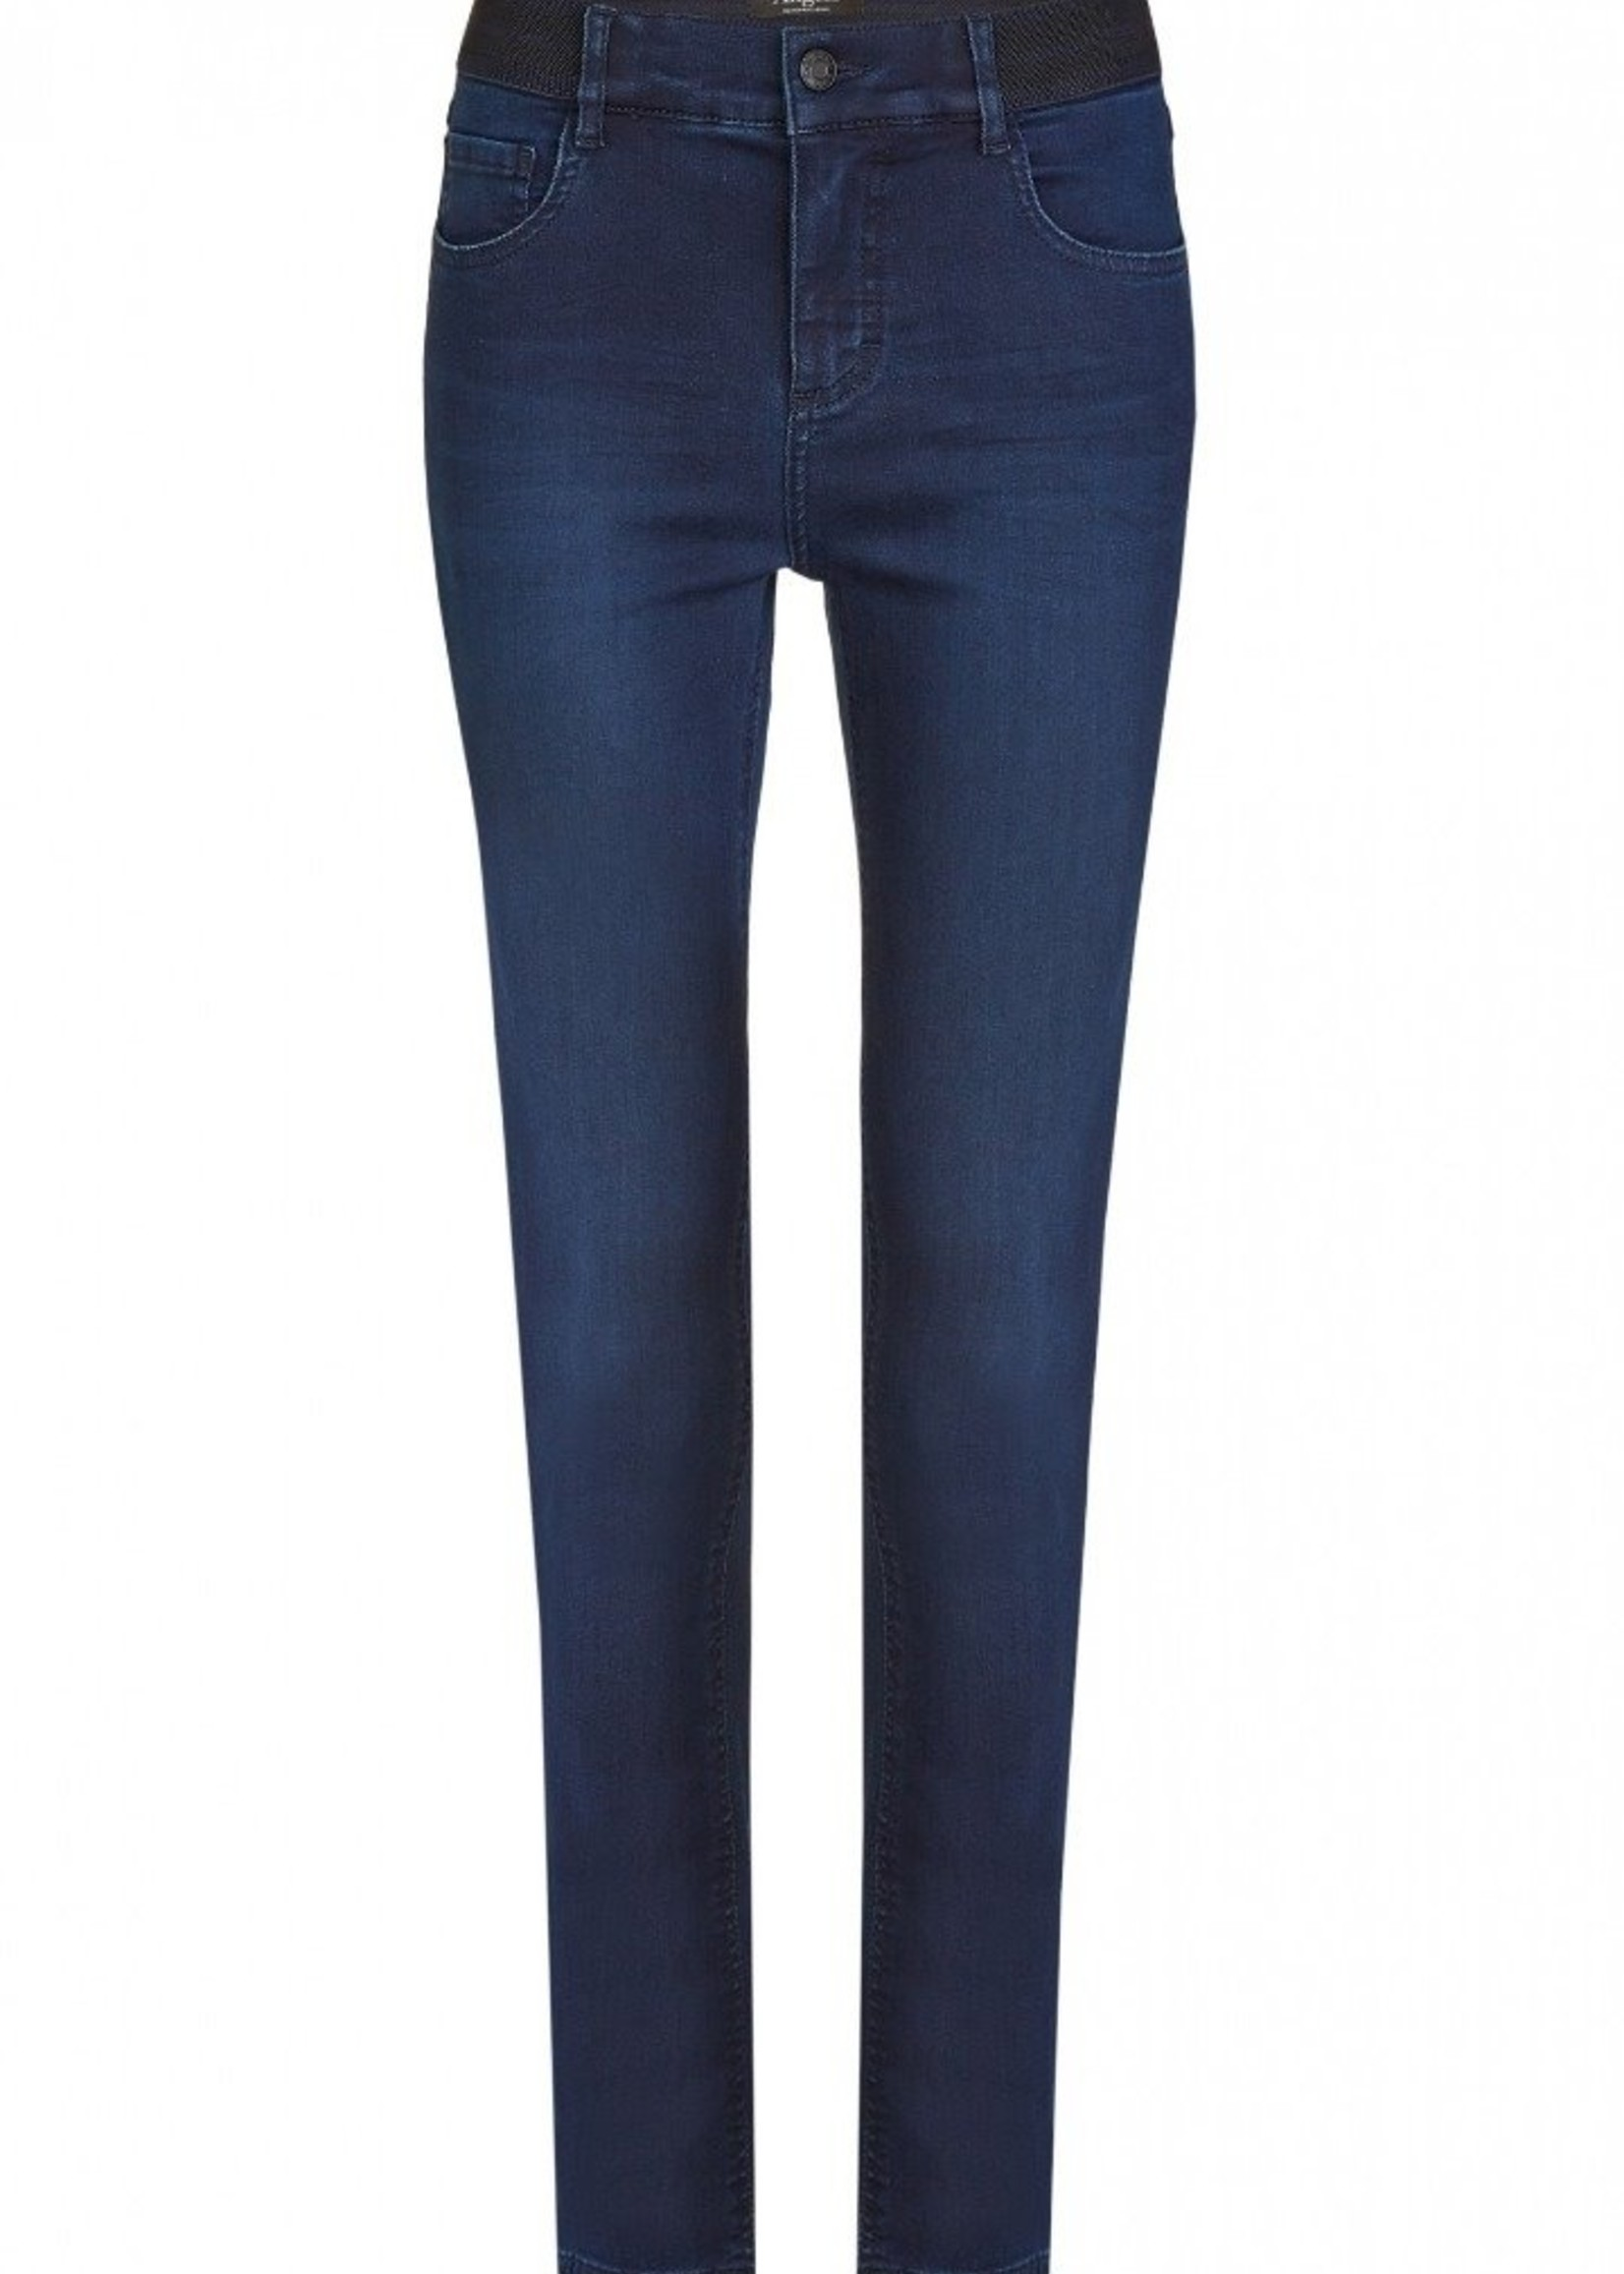 Angels Angels One Size Jeans Dark Blue